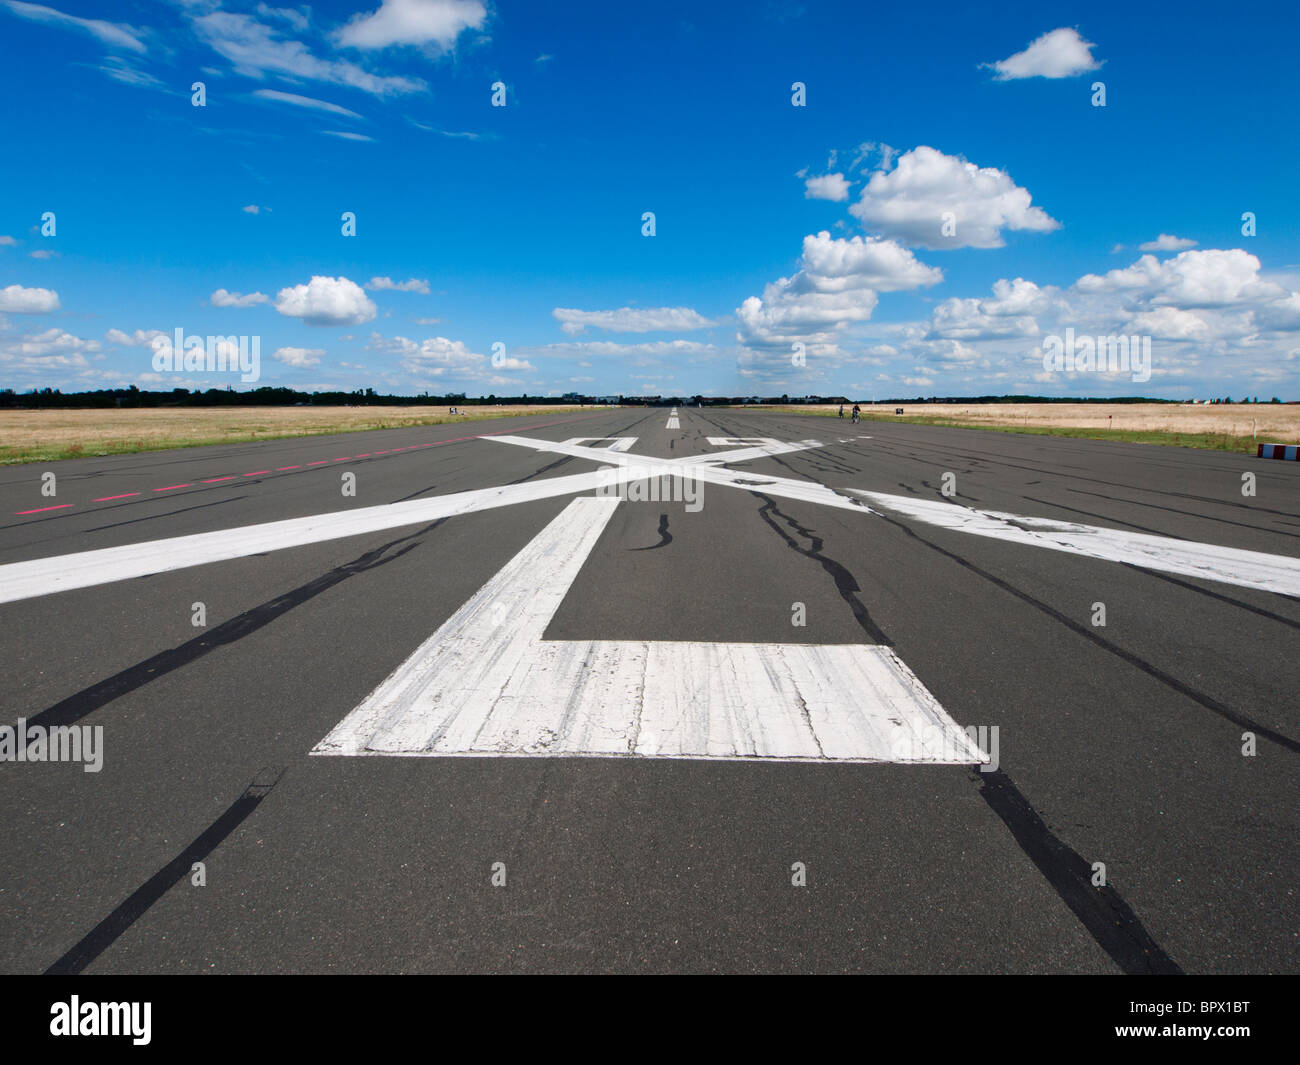 Disused runway at new city public Tempelhofer Park on site of famous former Tempelhof Airport in Berlin Germany - Stock Image